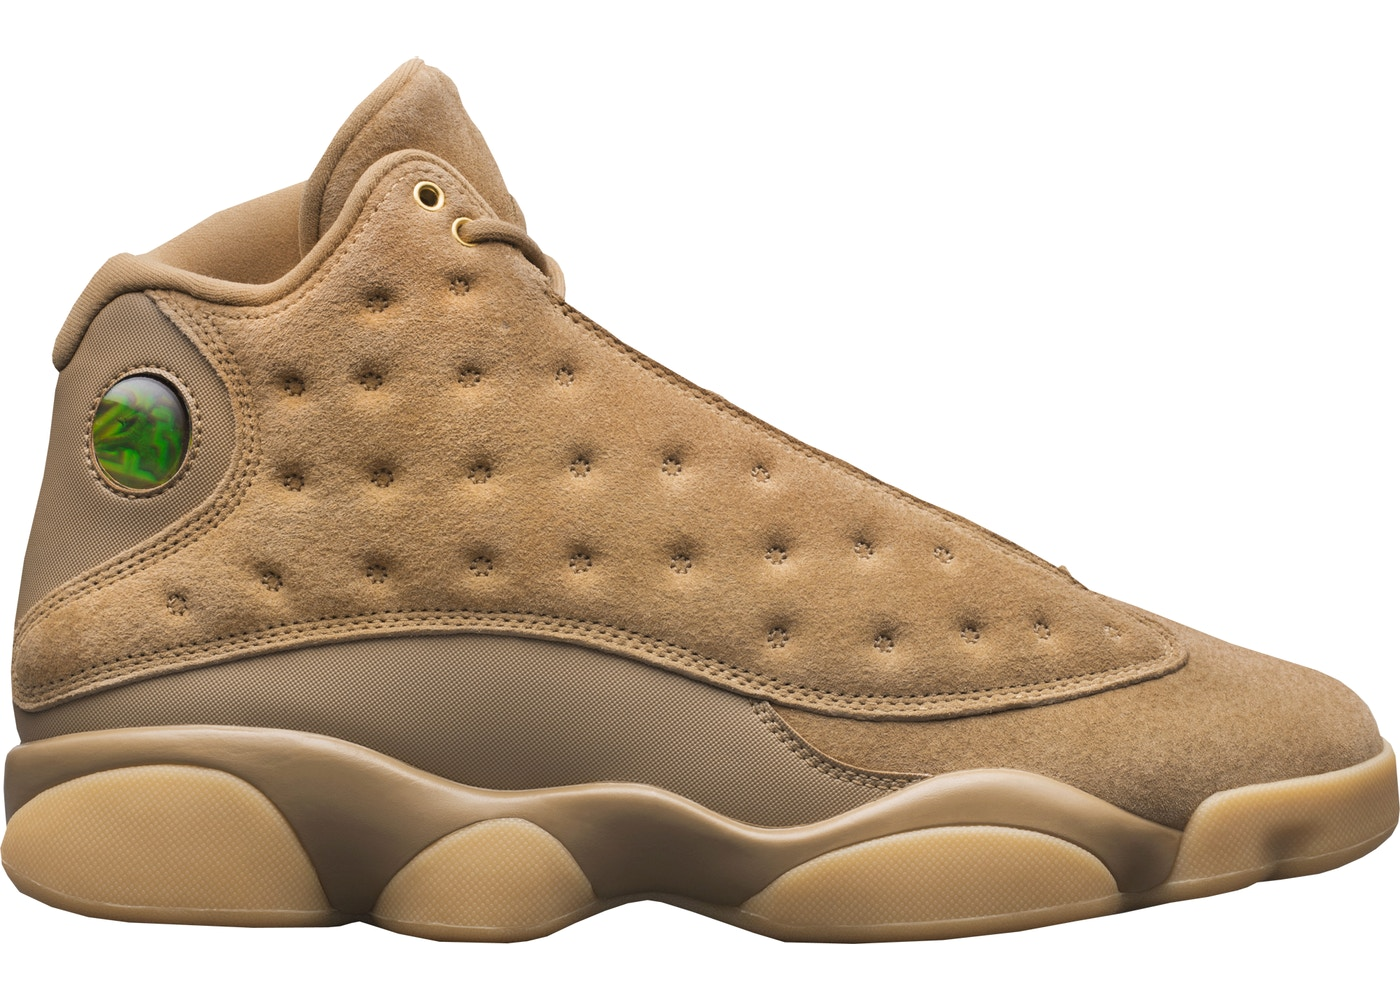 Jordan 13 Retro Wheat - 414571-705 62b701182